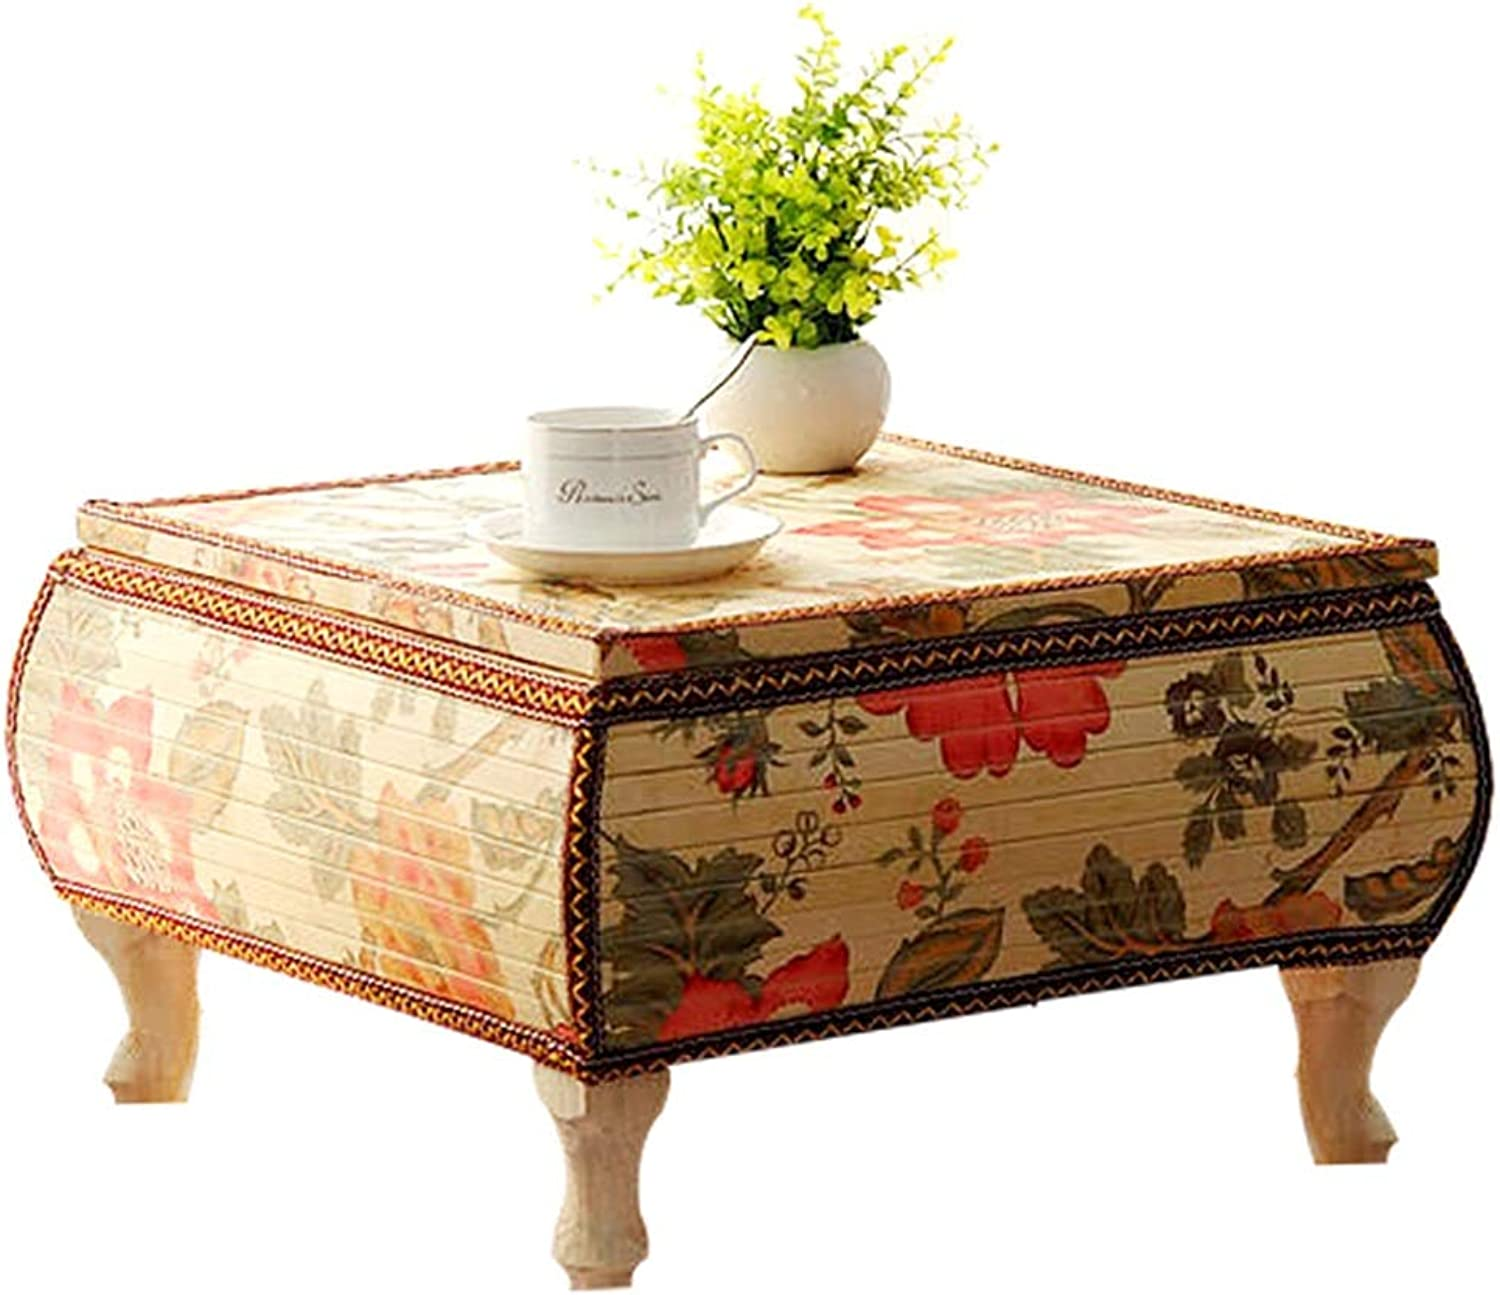 Table Tatami Coffee Table Bay Window Table Floating Table Balcony Table Coffee Table Square Table (color   Beige, Size   36  36  30cm)